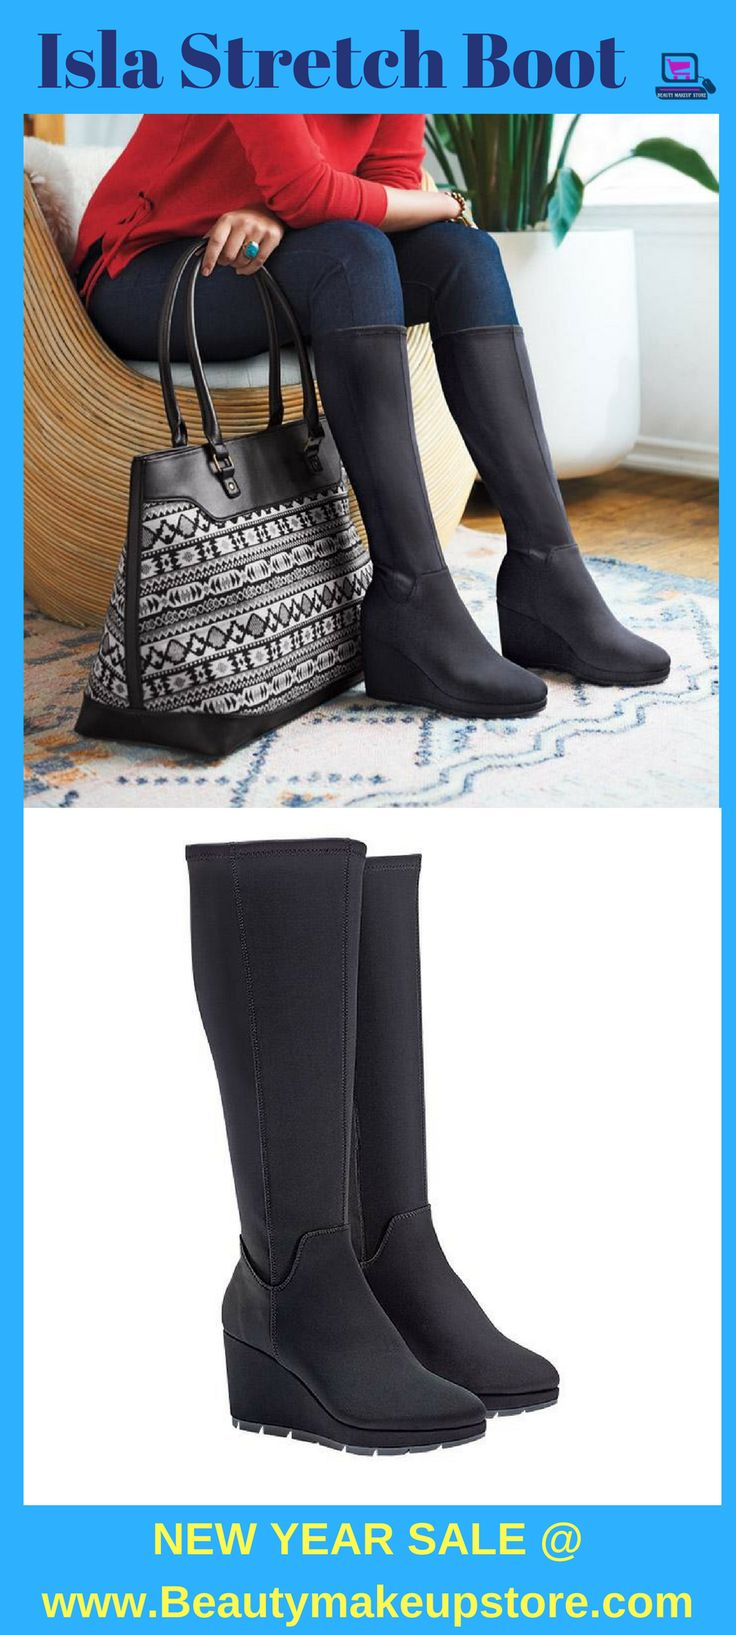 Isla Stretch Boot #stretchboot #womenstretchboot #womenboot #womenbootforfall stretch boots how to | stretch boots | stretch boots diy | stretch boots calves | stretch boots calves how to | women boots | women boots for fall | women boots knee high | women boots ankle | women boots winter | women boots | WOMEN: BOOTS/SHOES/PURSES/ACCESSORIES: | Women Boots | Women Boots |